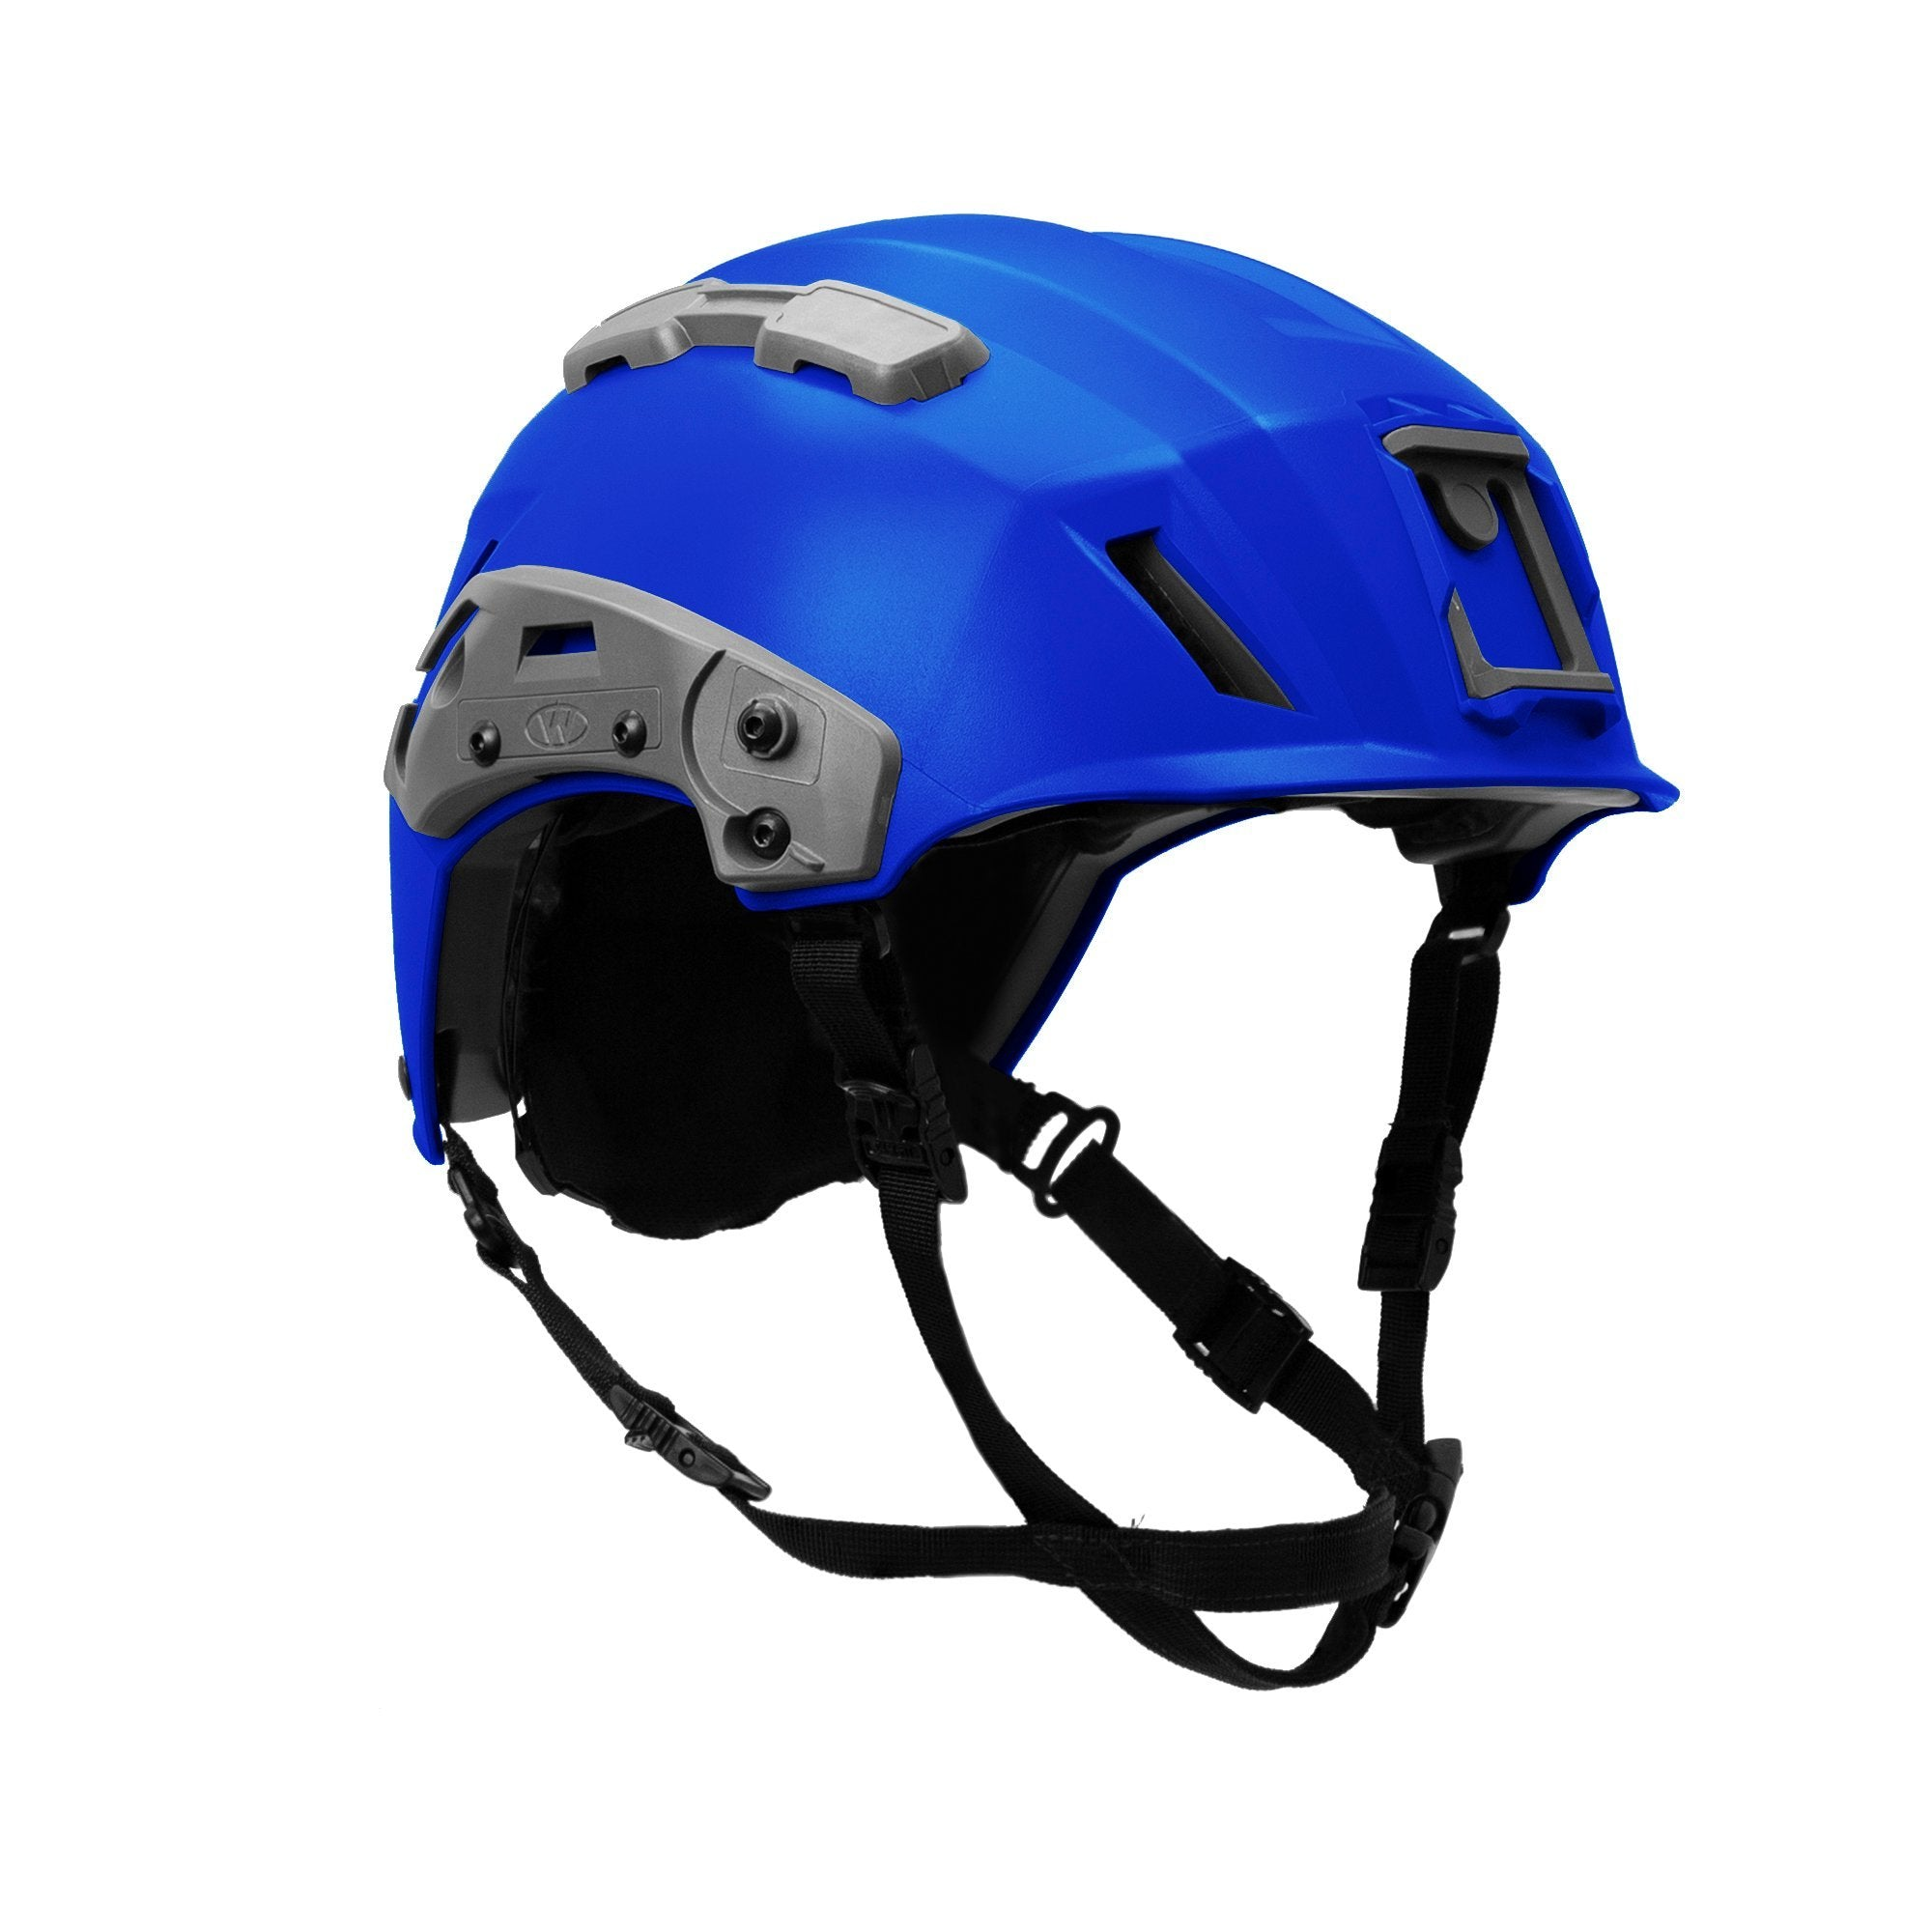 Team Wendy Helm EXFIL® SAR Tactical Blau